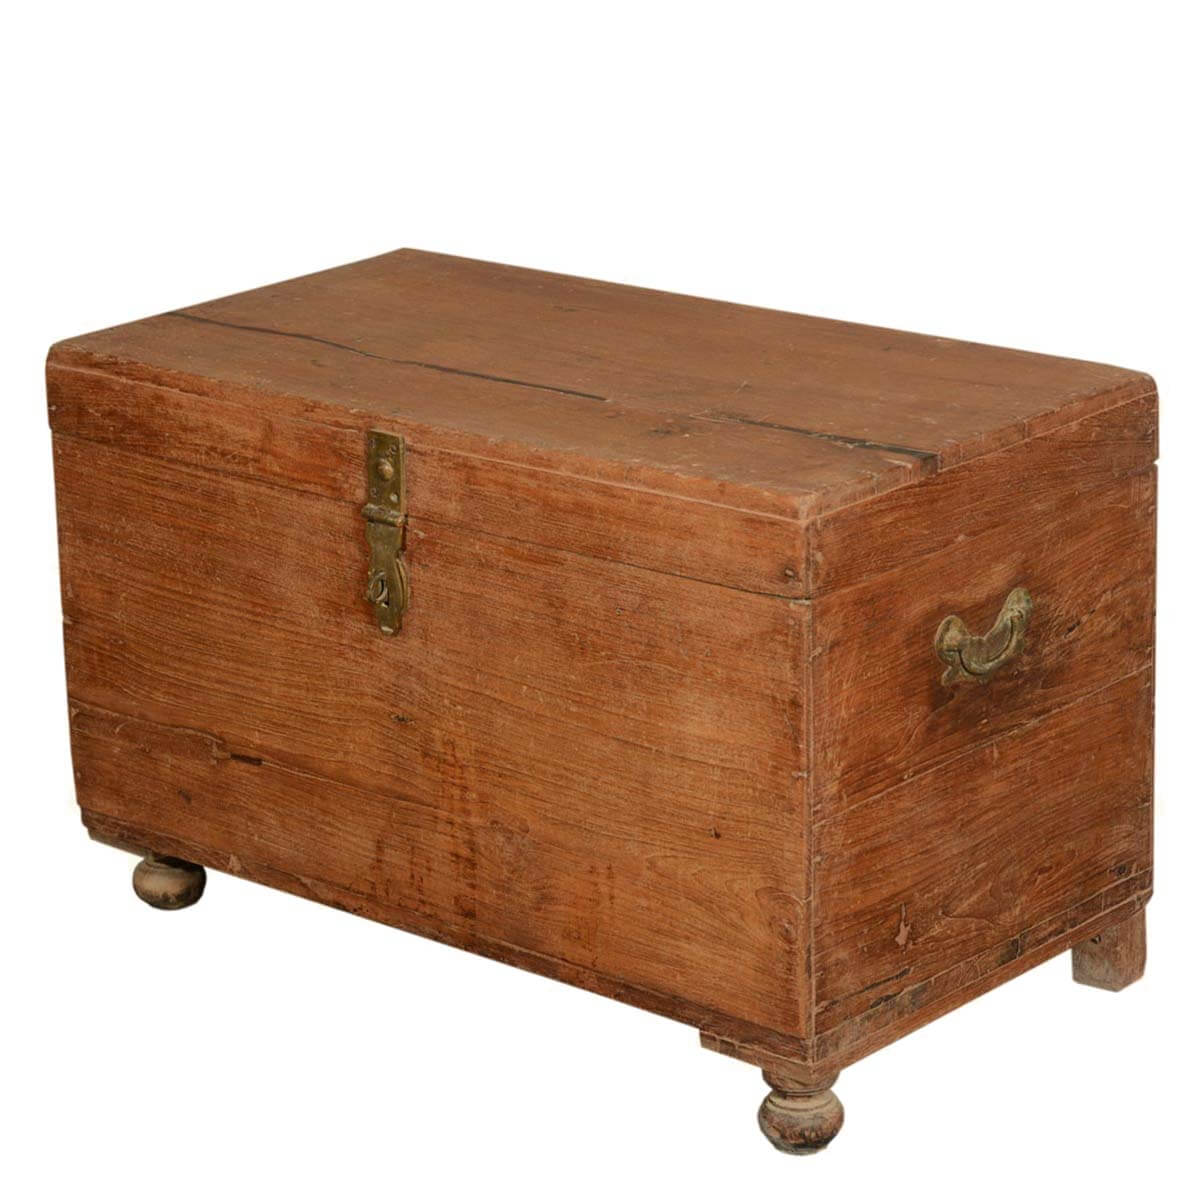 Grinnell primitive reclaimed wood storage coffee table chest Coffee table chest with storage